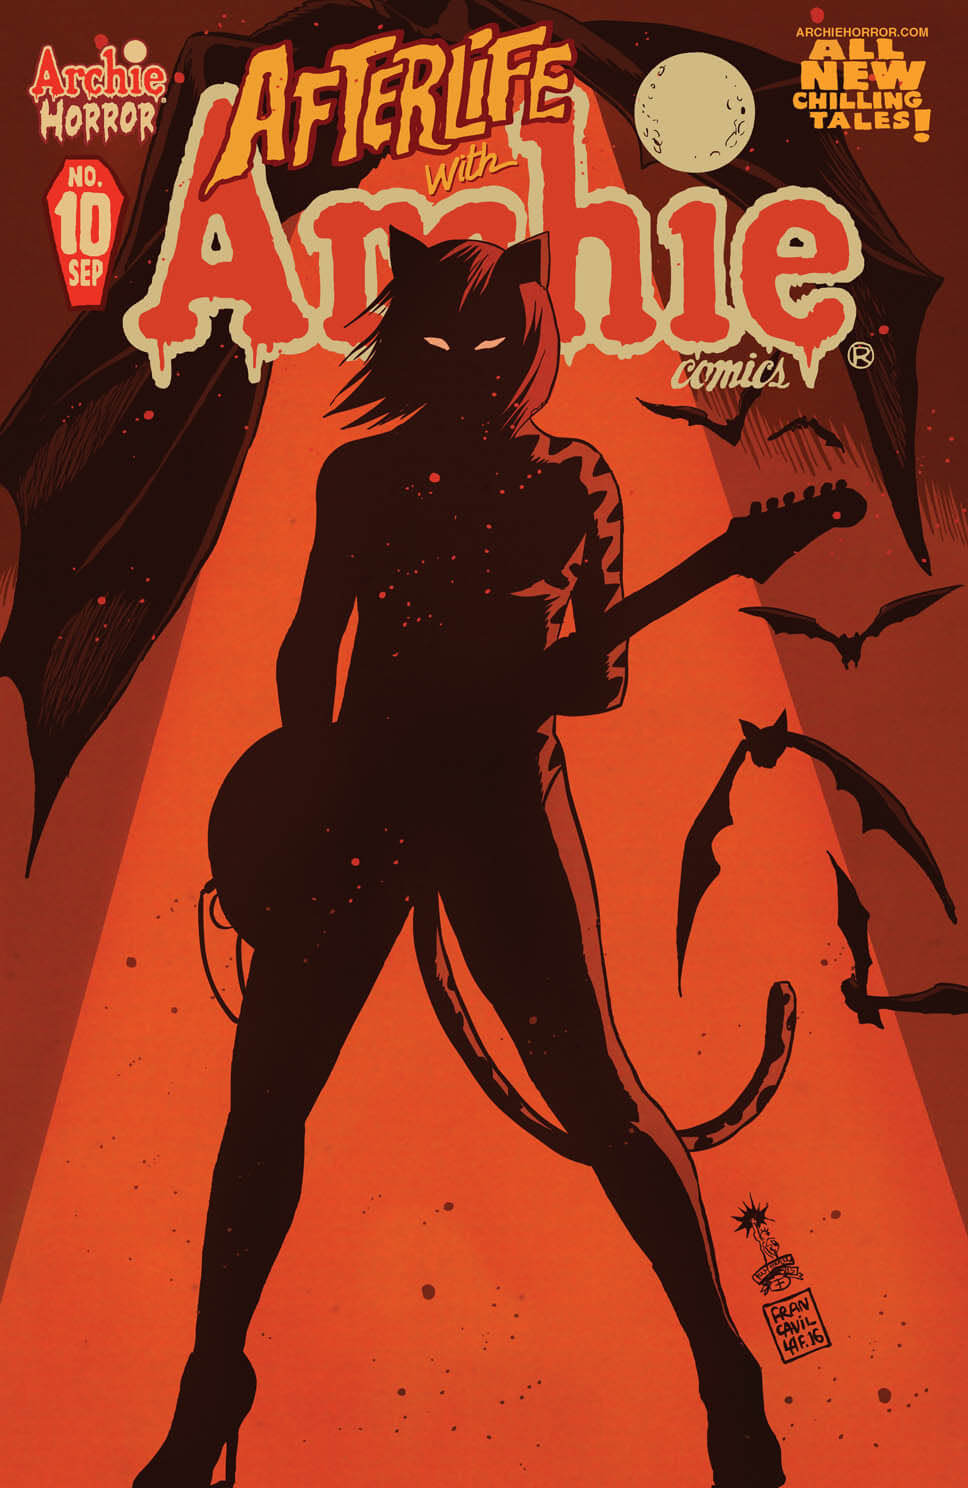 AFTERLIFE WITH ARCHIE #10 - Cover by Francesco Francavilla